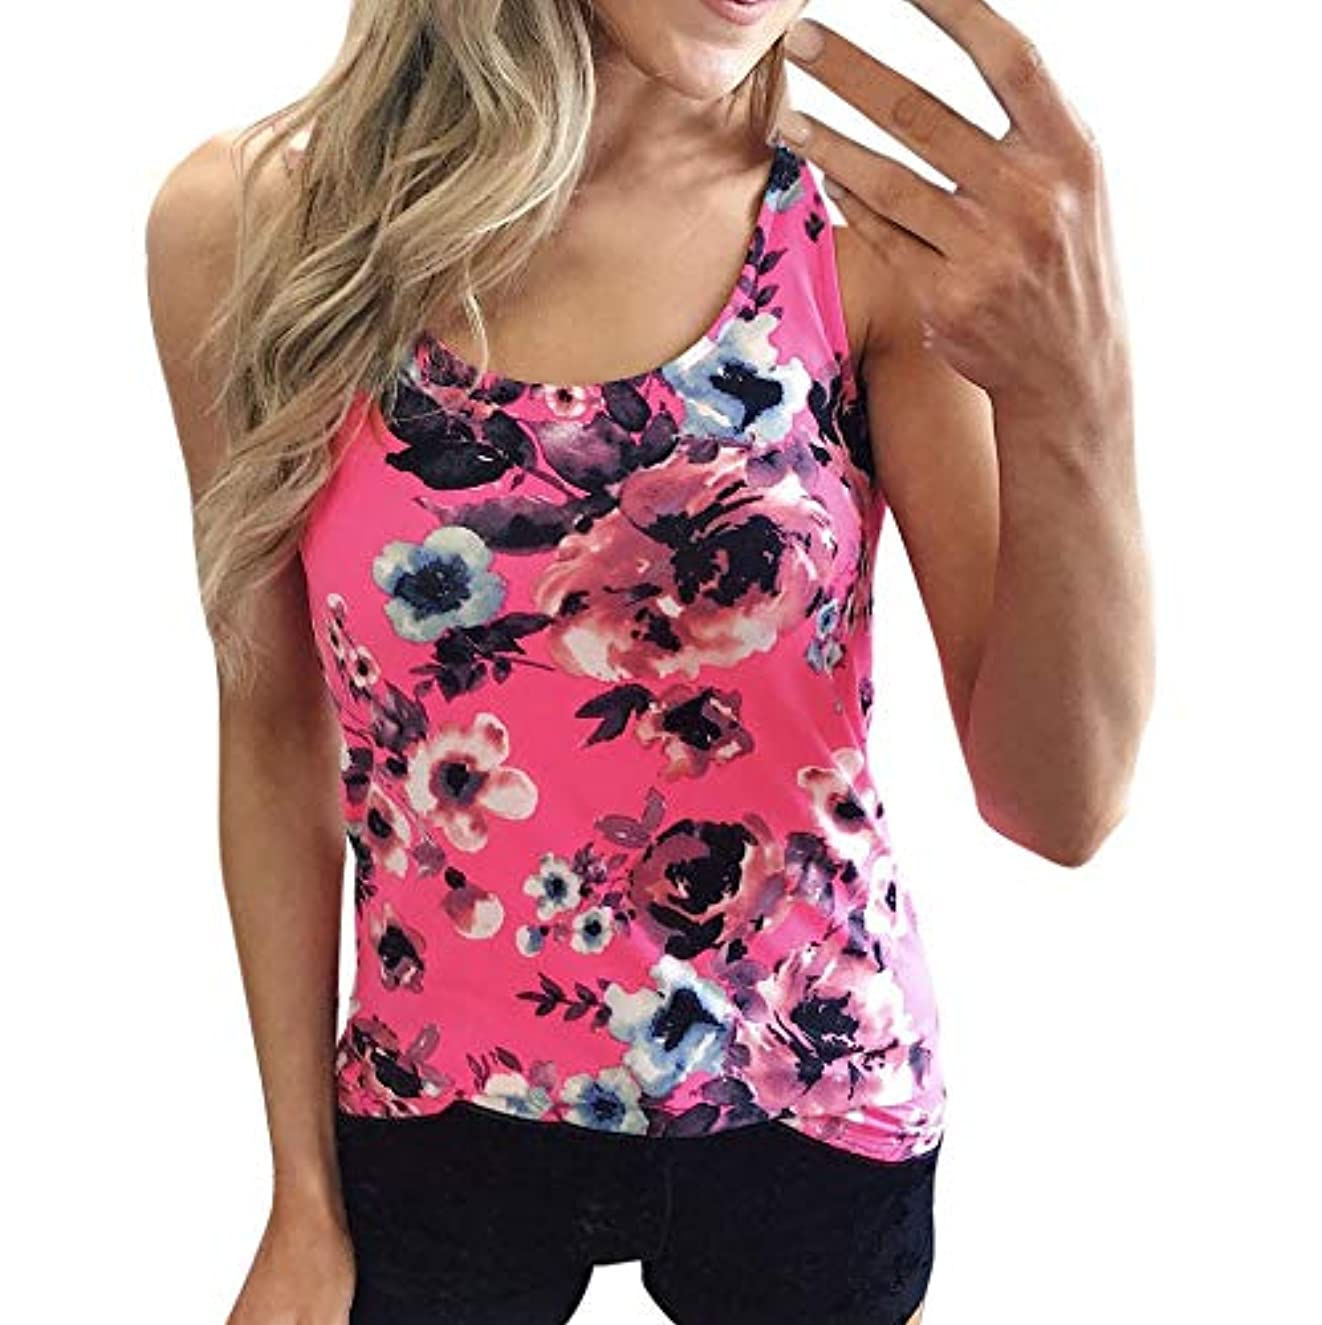 Graphic Tees for Women,YuhooSUN Summer Round Neck Shirts Pleated Sleevelees Tank Tops Floar Print Vest Blouse Tops